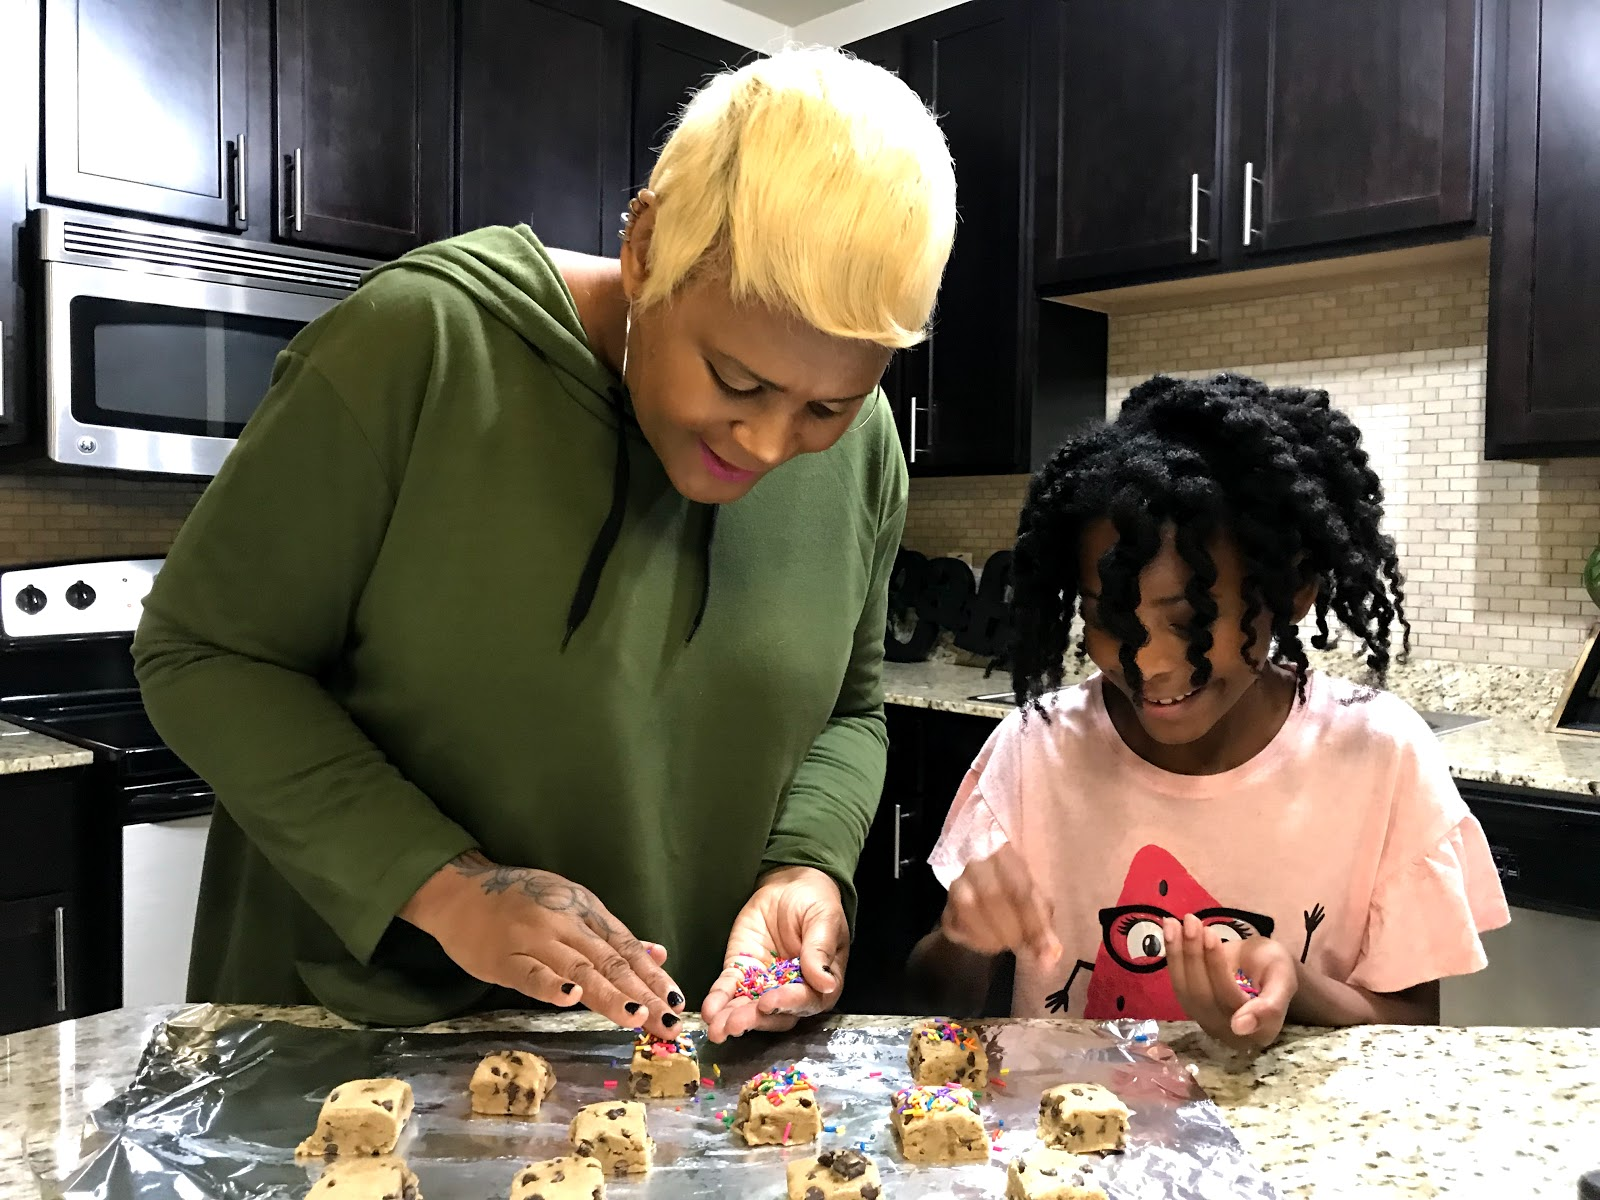 Image: Tangie and Daughter Moriah making cookies and ice-icecream.